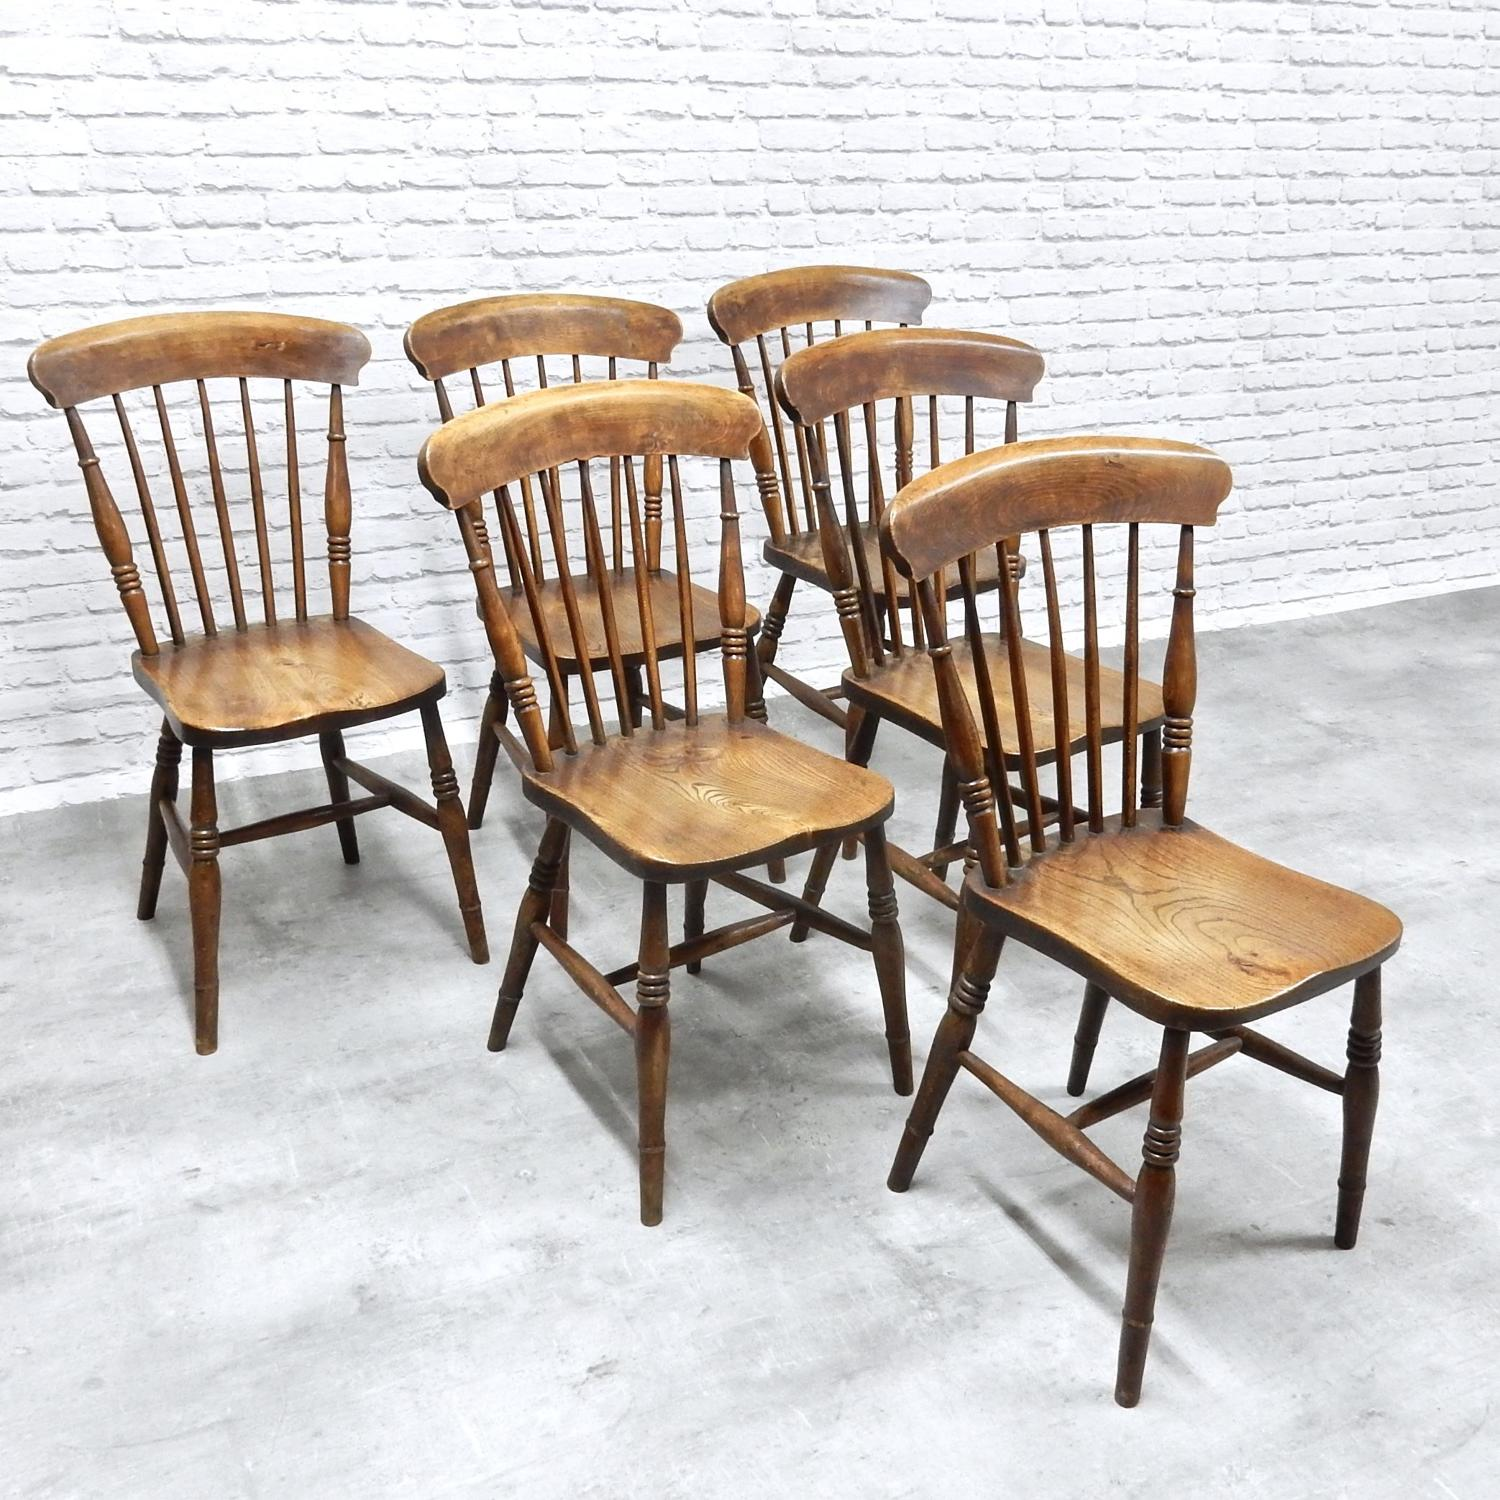 C19th Kitchen Chairs